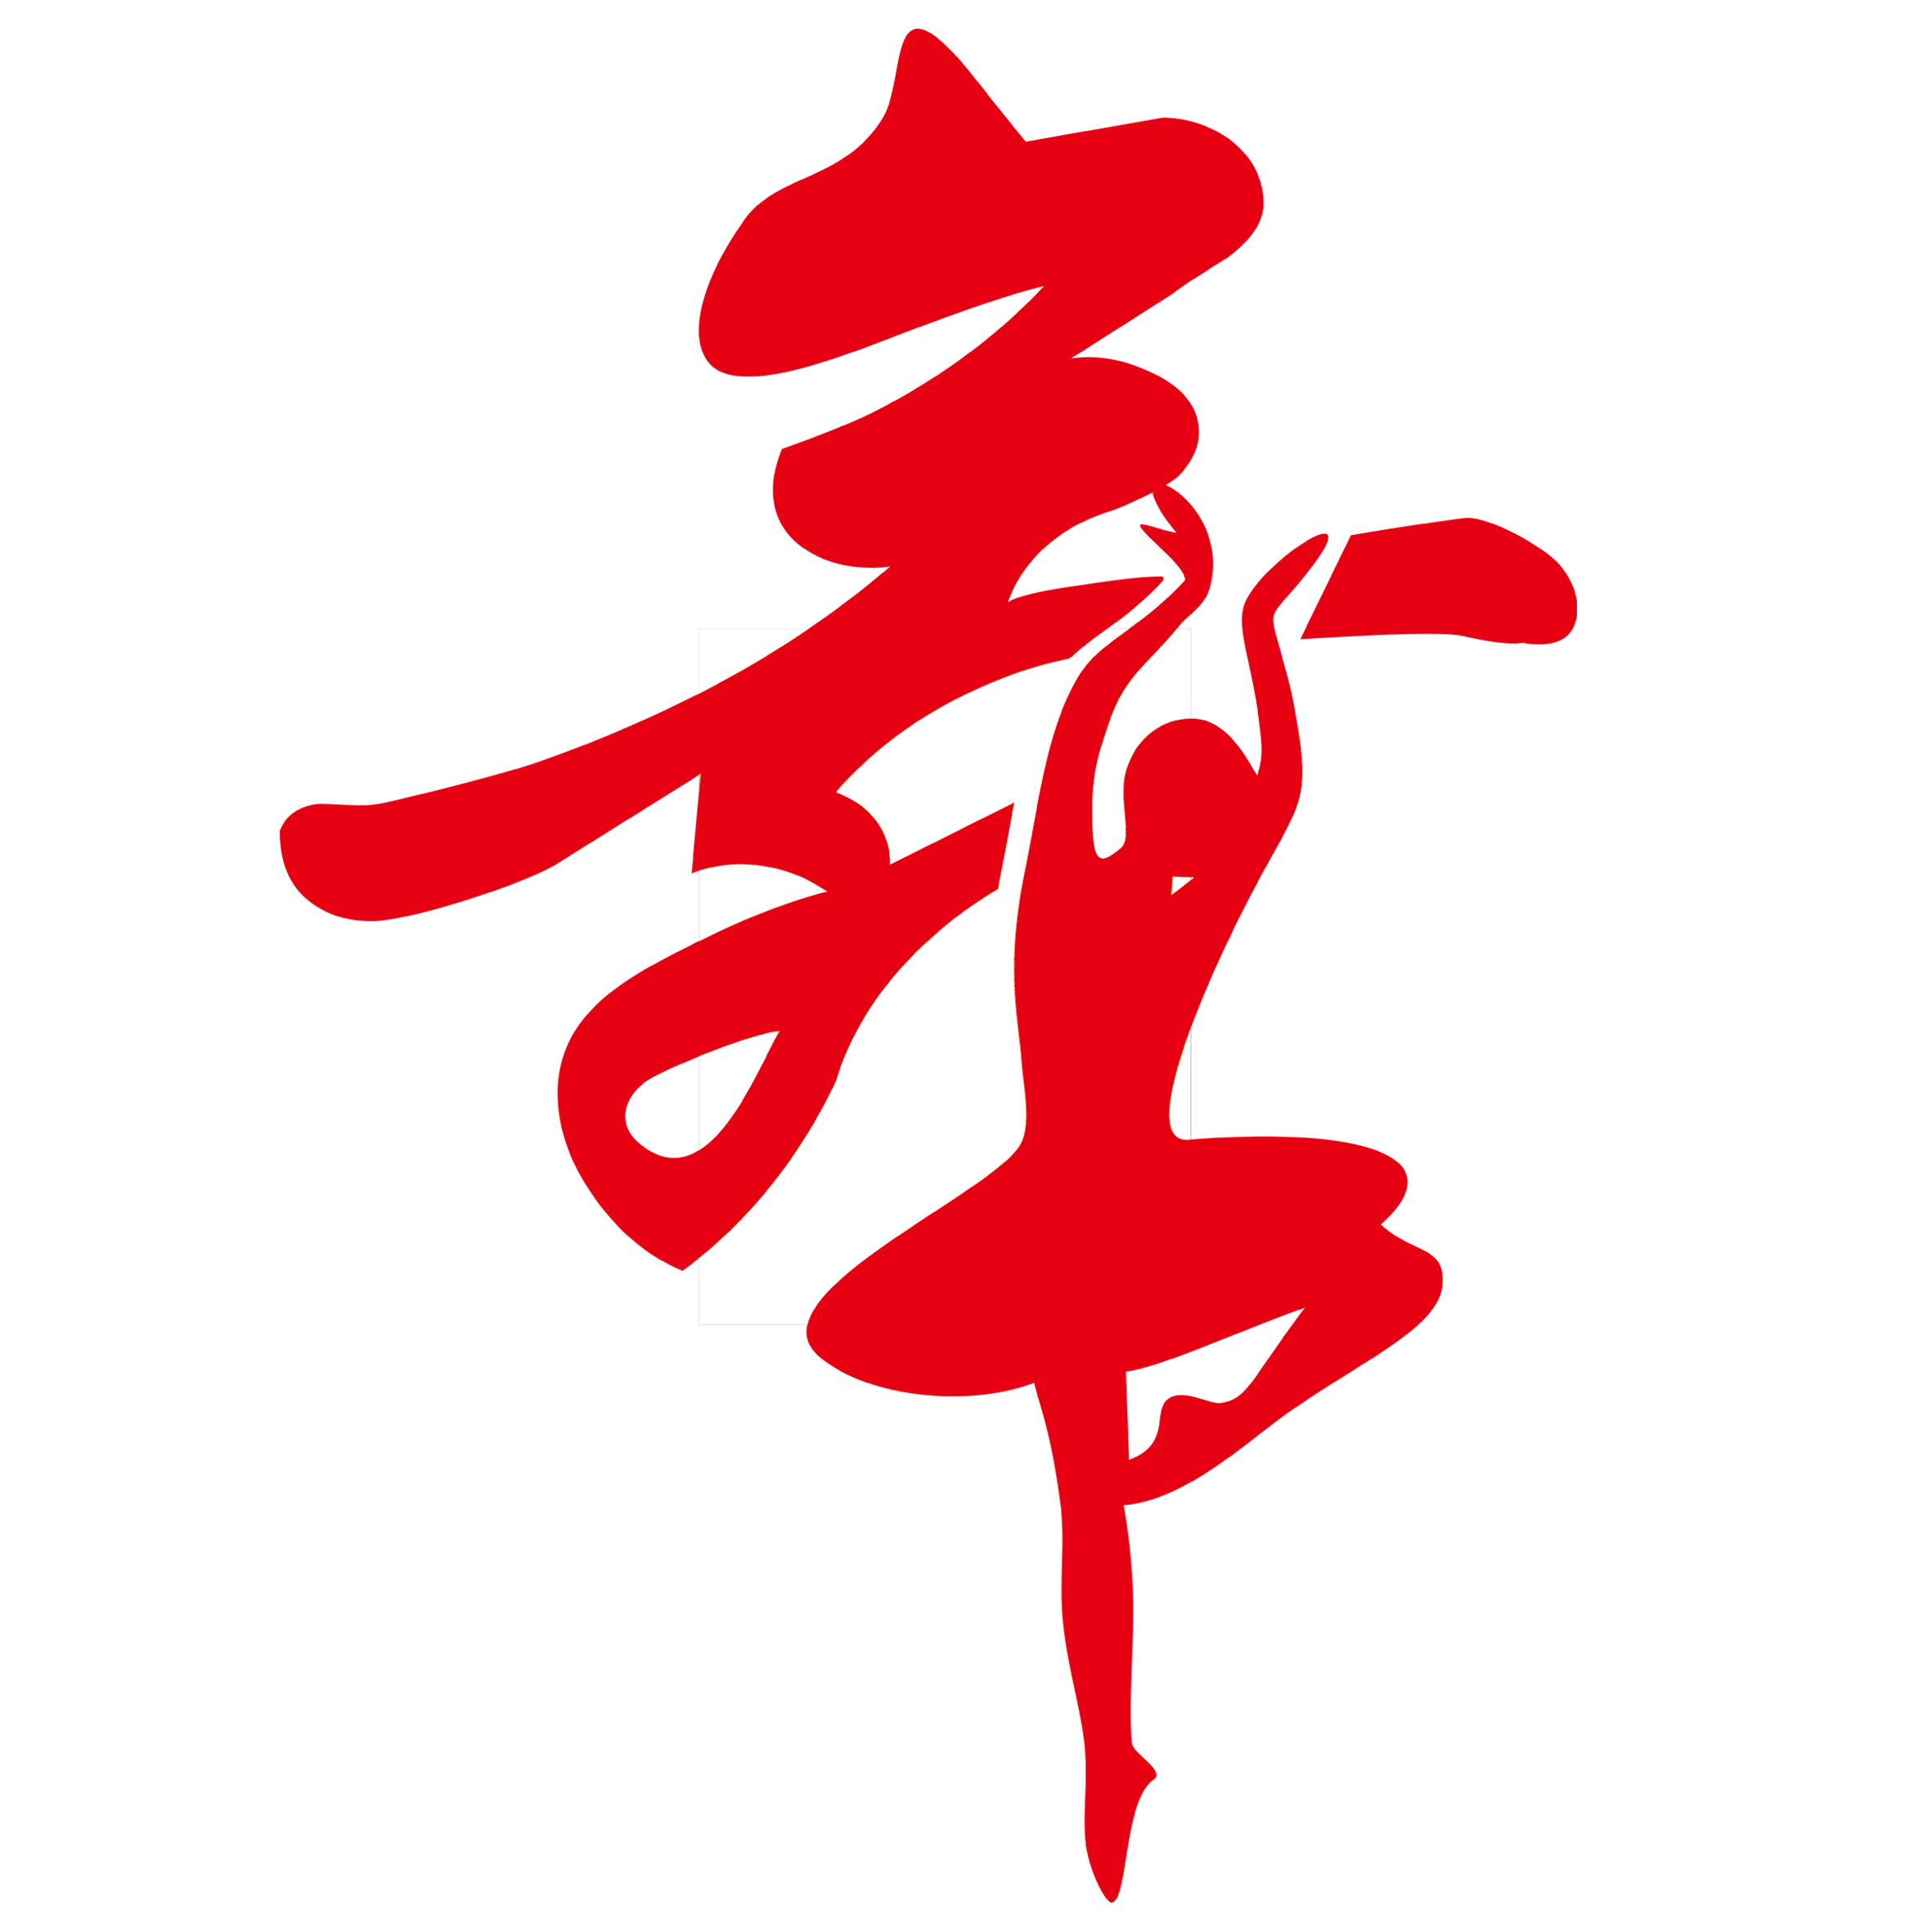 Creative clipart creative dance. Costume ballet chinese calligraphy